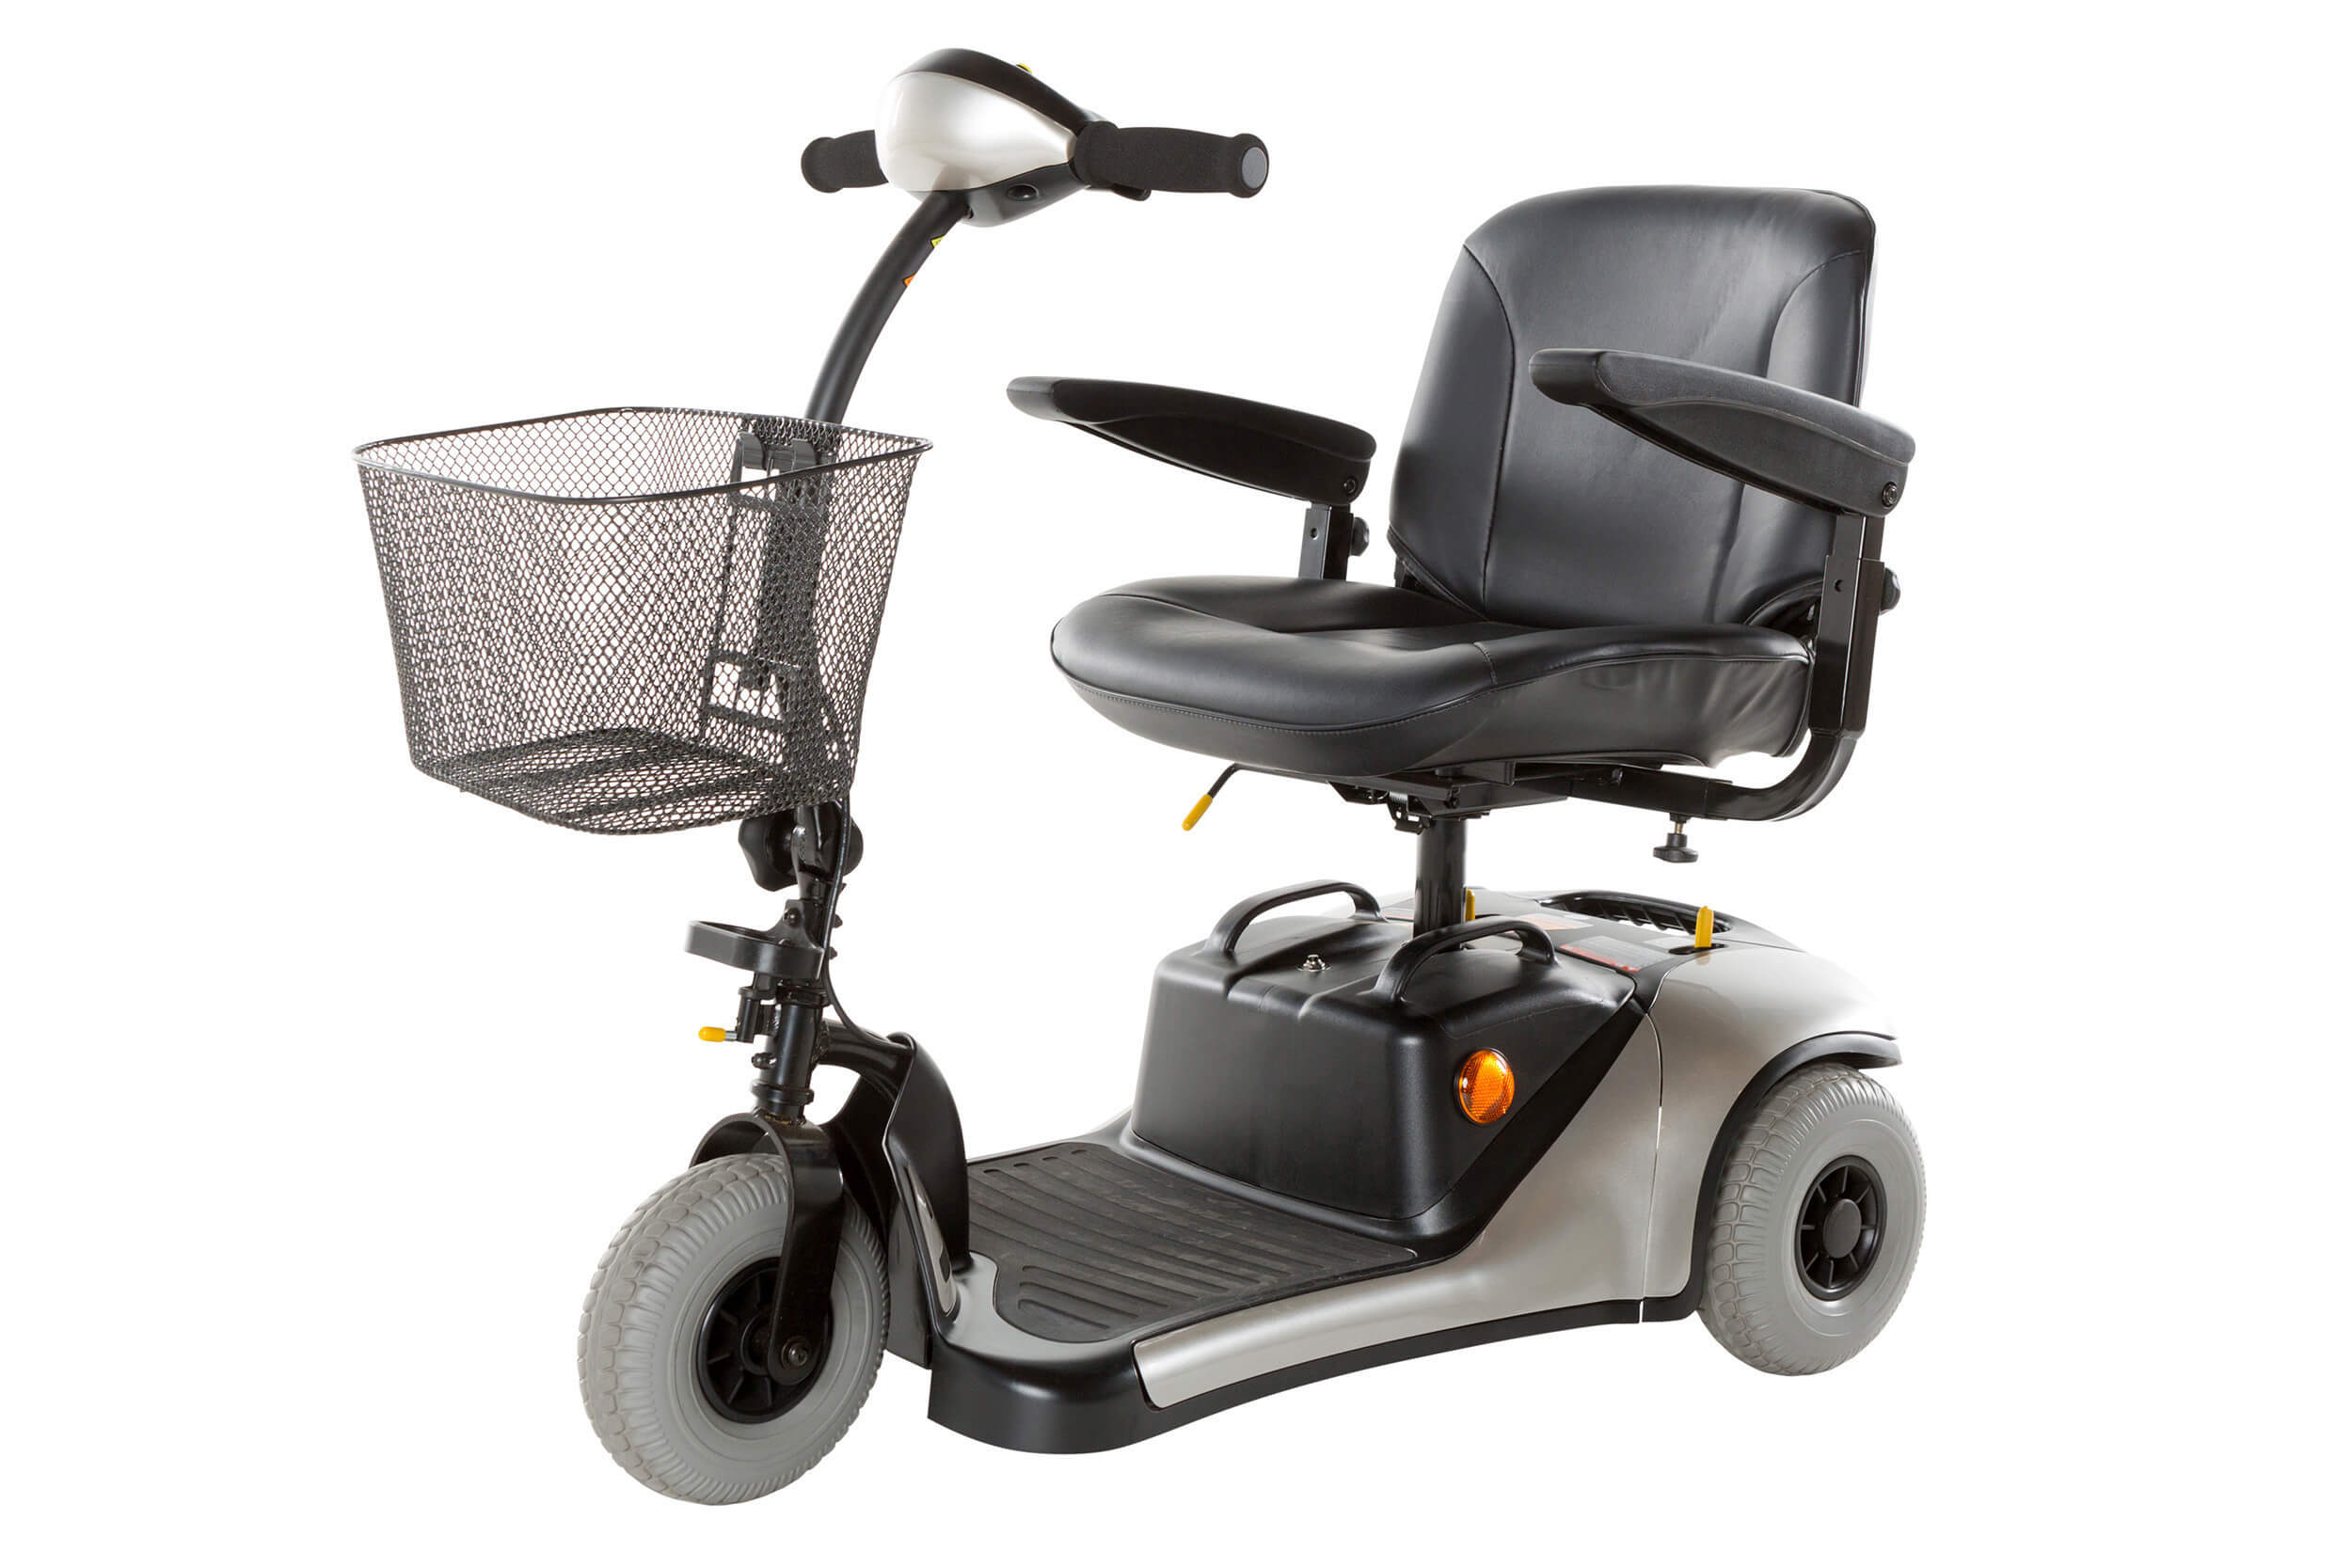 Electric Scooter Rental at our Resort in Kissimmee FL | Westgate Town Center Resort & Spa | Westgate Resorts